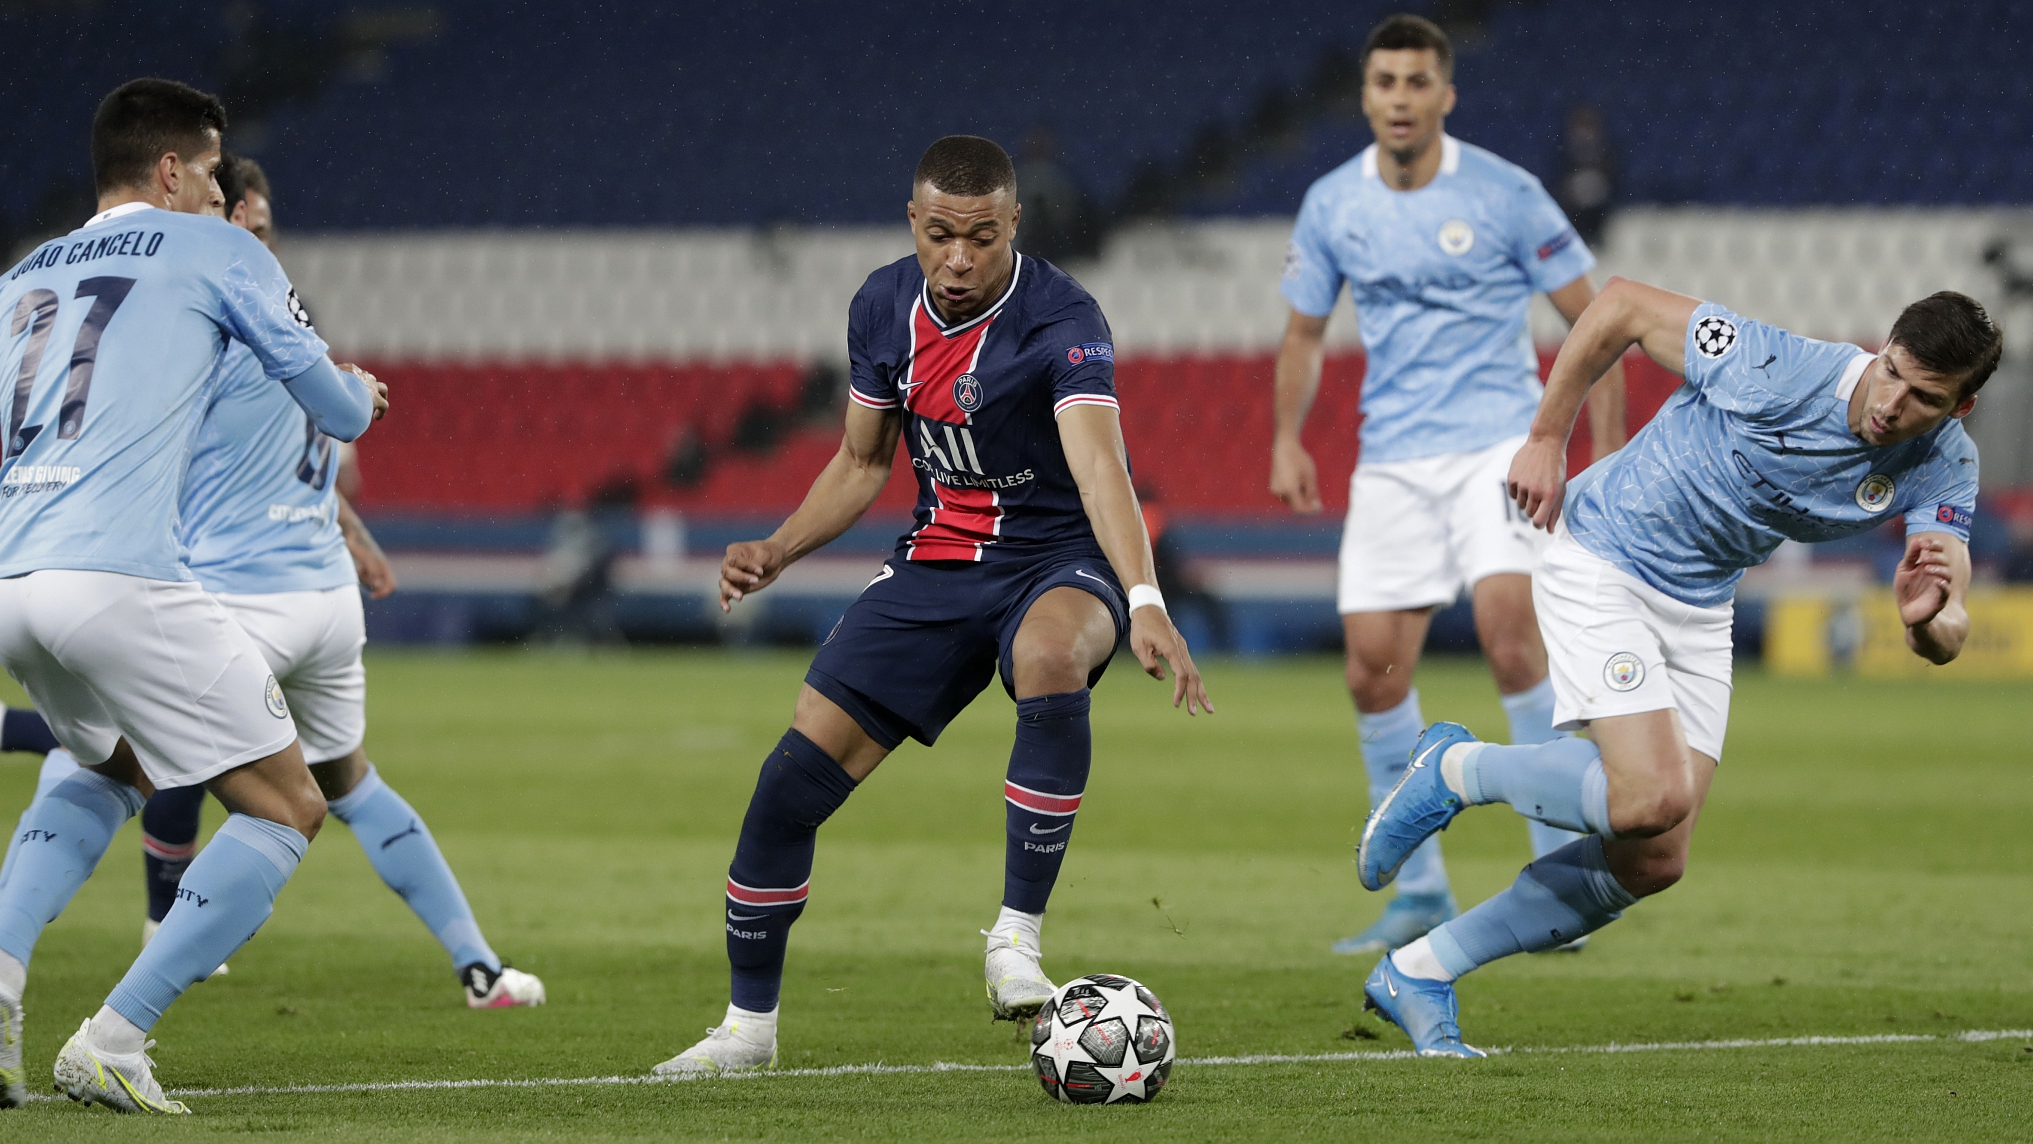 Neymar and Mbappe struggle as Man City come from behind to stun PSG - CGTN